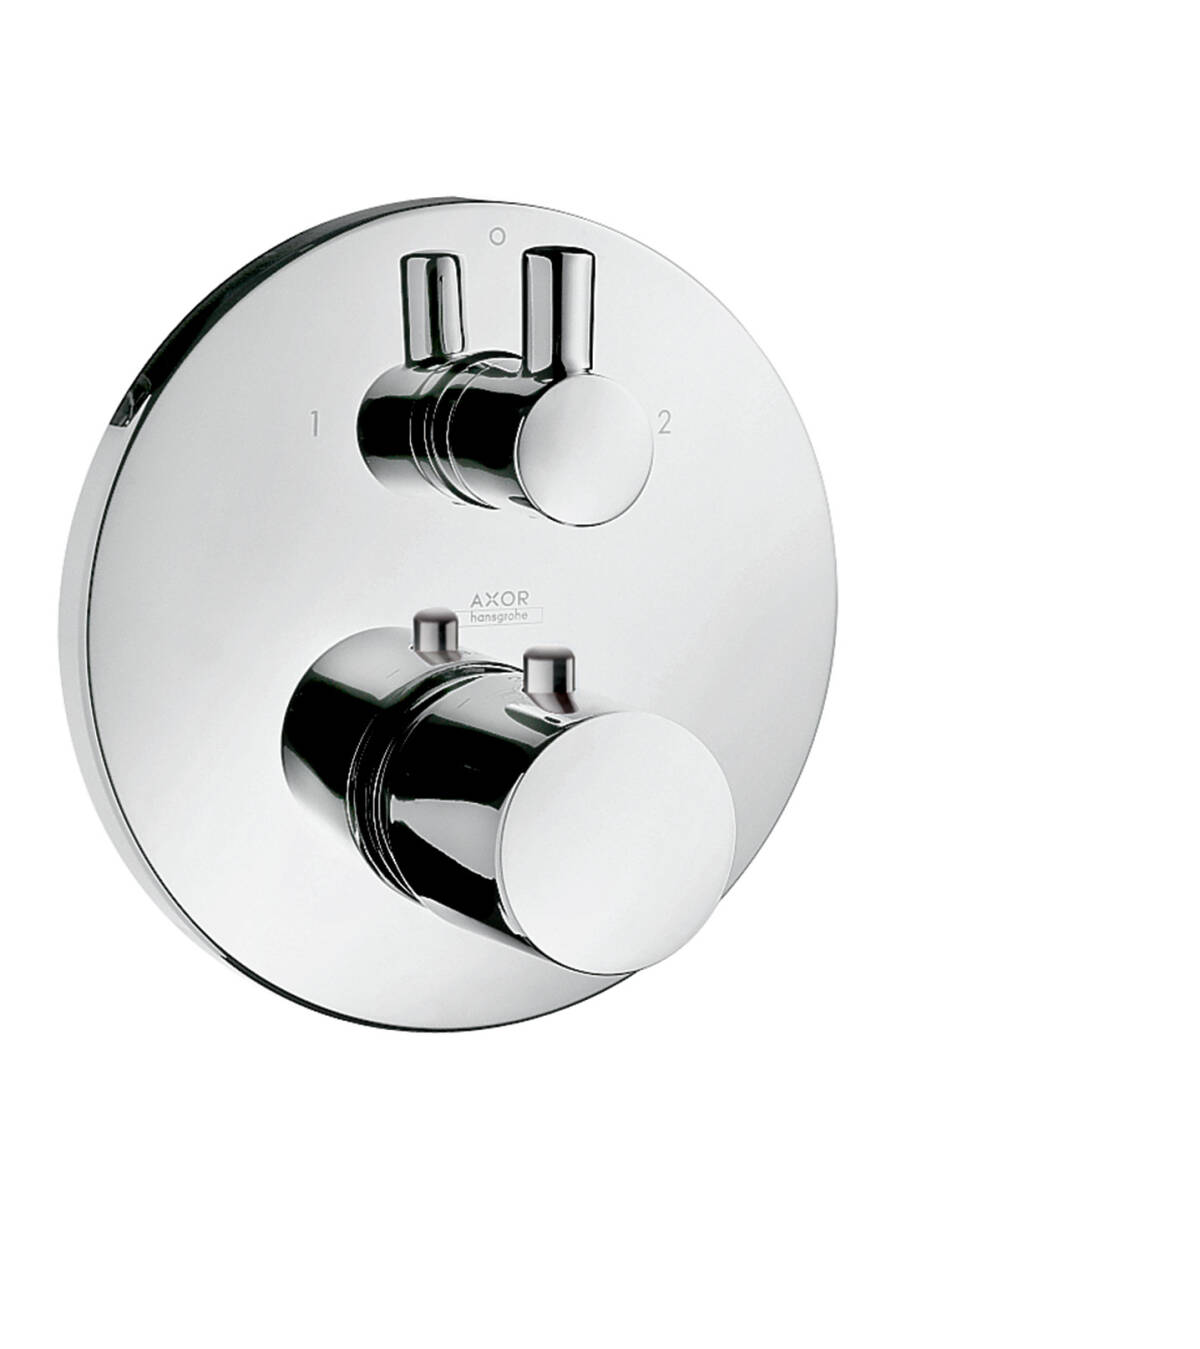 Thermostatic mixer for concealed installation with shut-off/ diverter valve, Chrome, 38720000